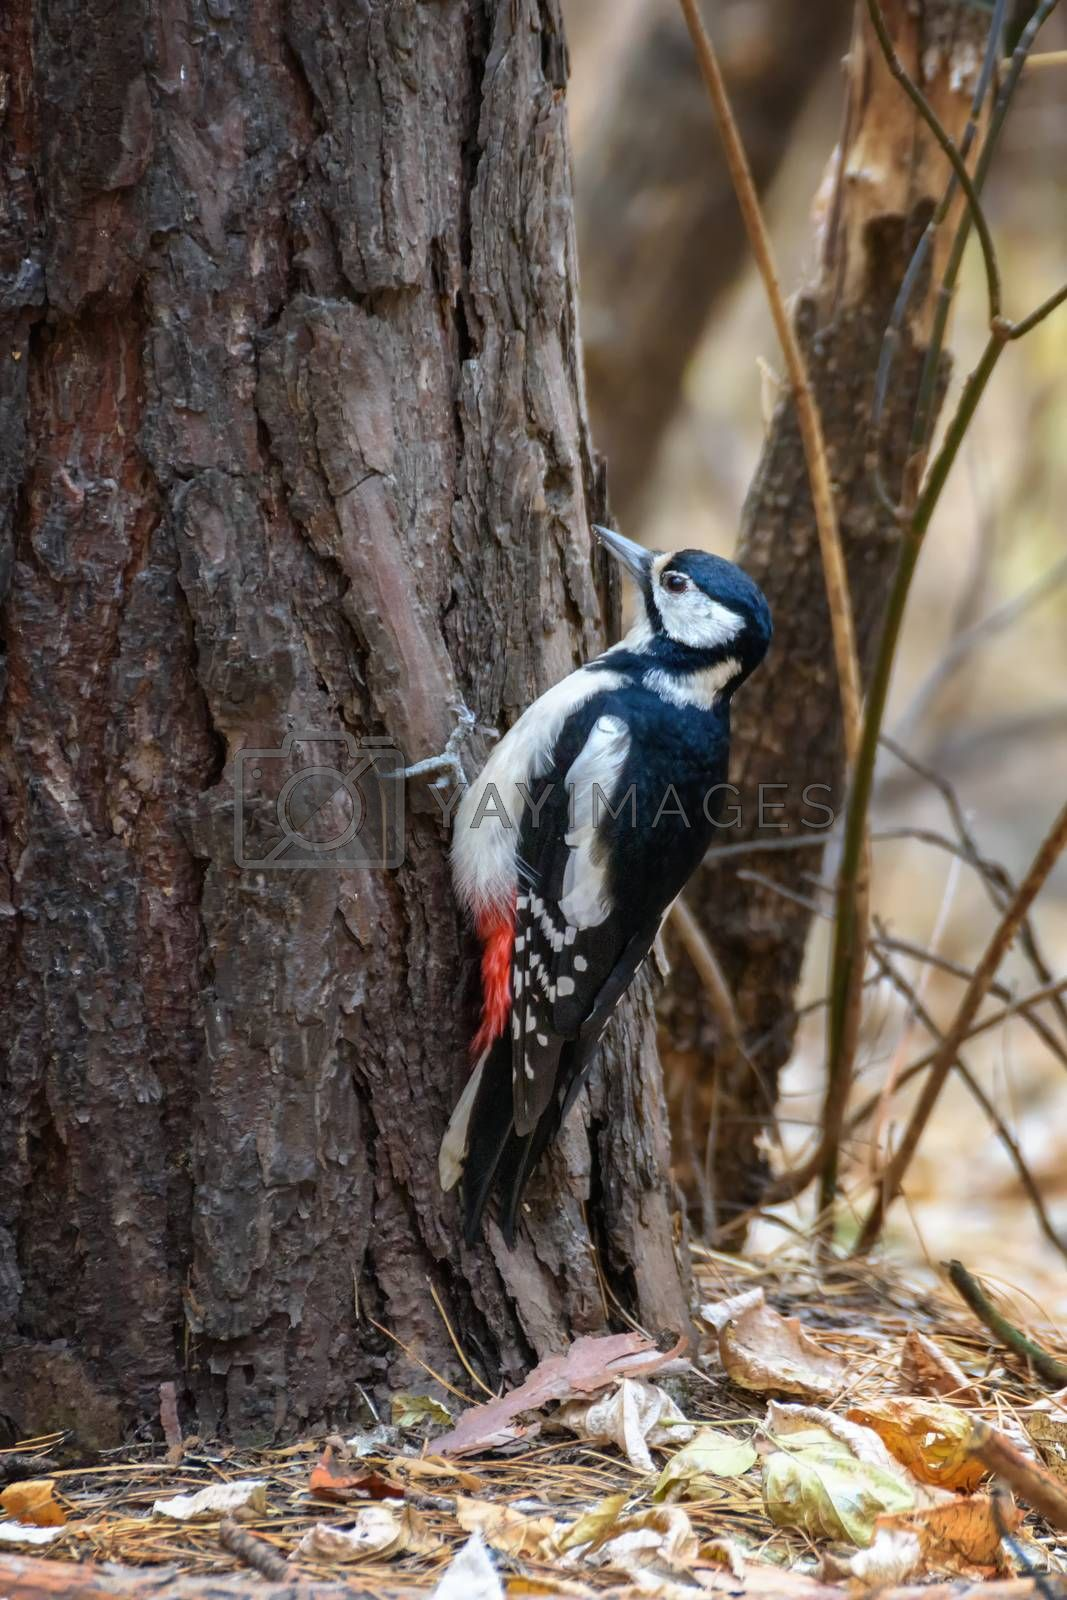 Royalty free image of A woodpecker sits on a tree trunk by VladimirZubkov